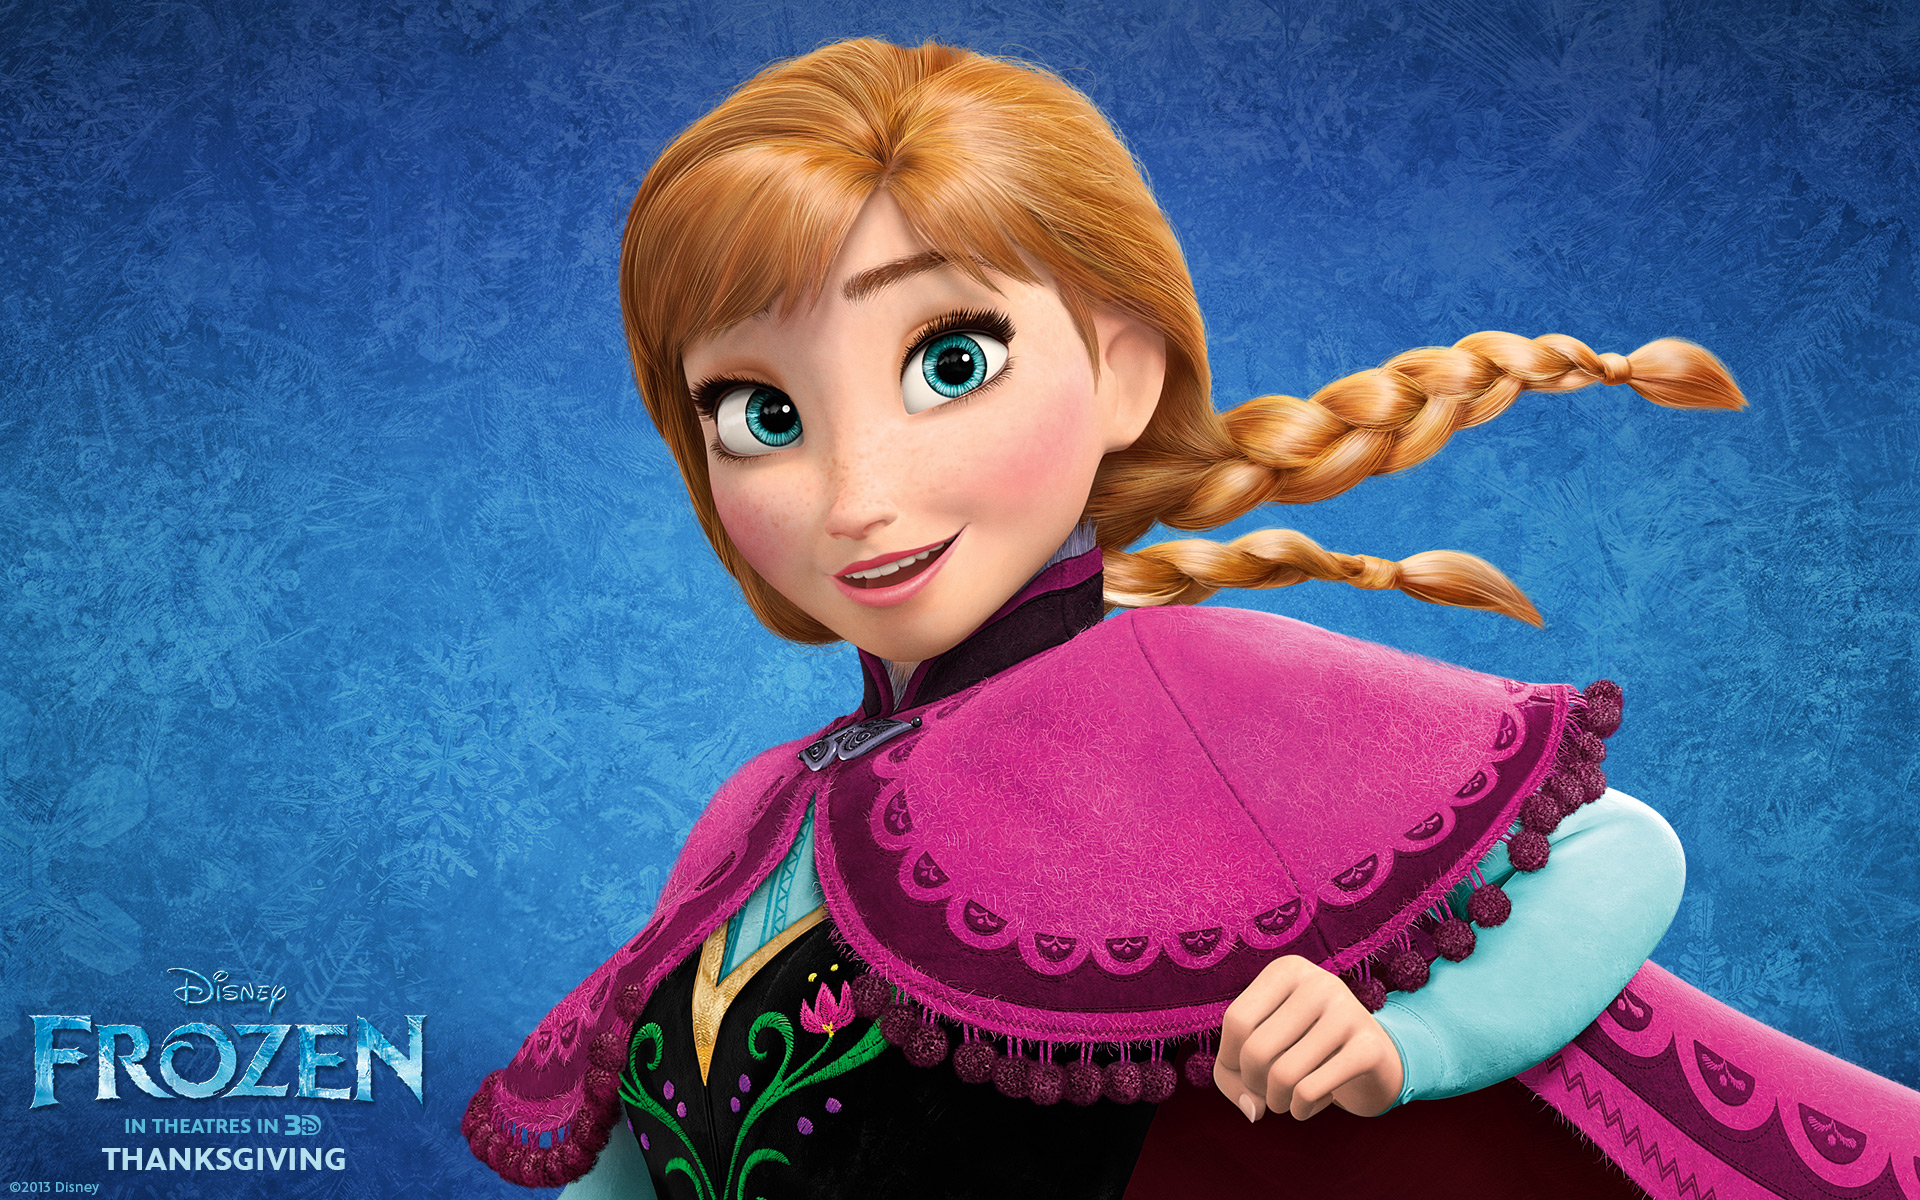 anna in frozen wallpapers | wallpapers hd